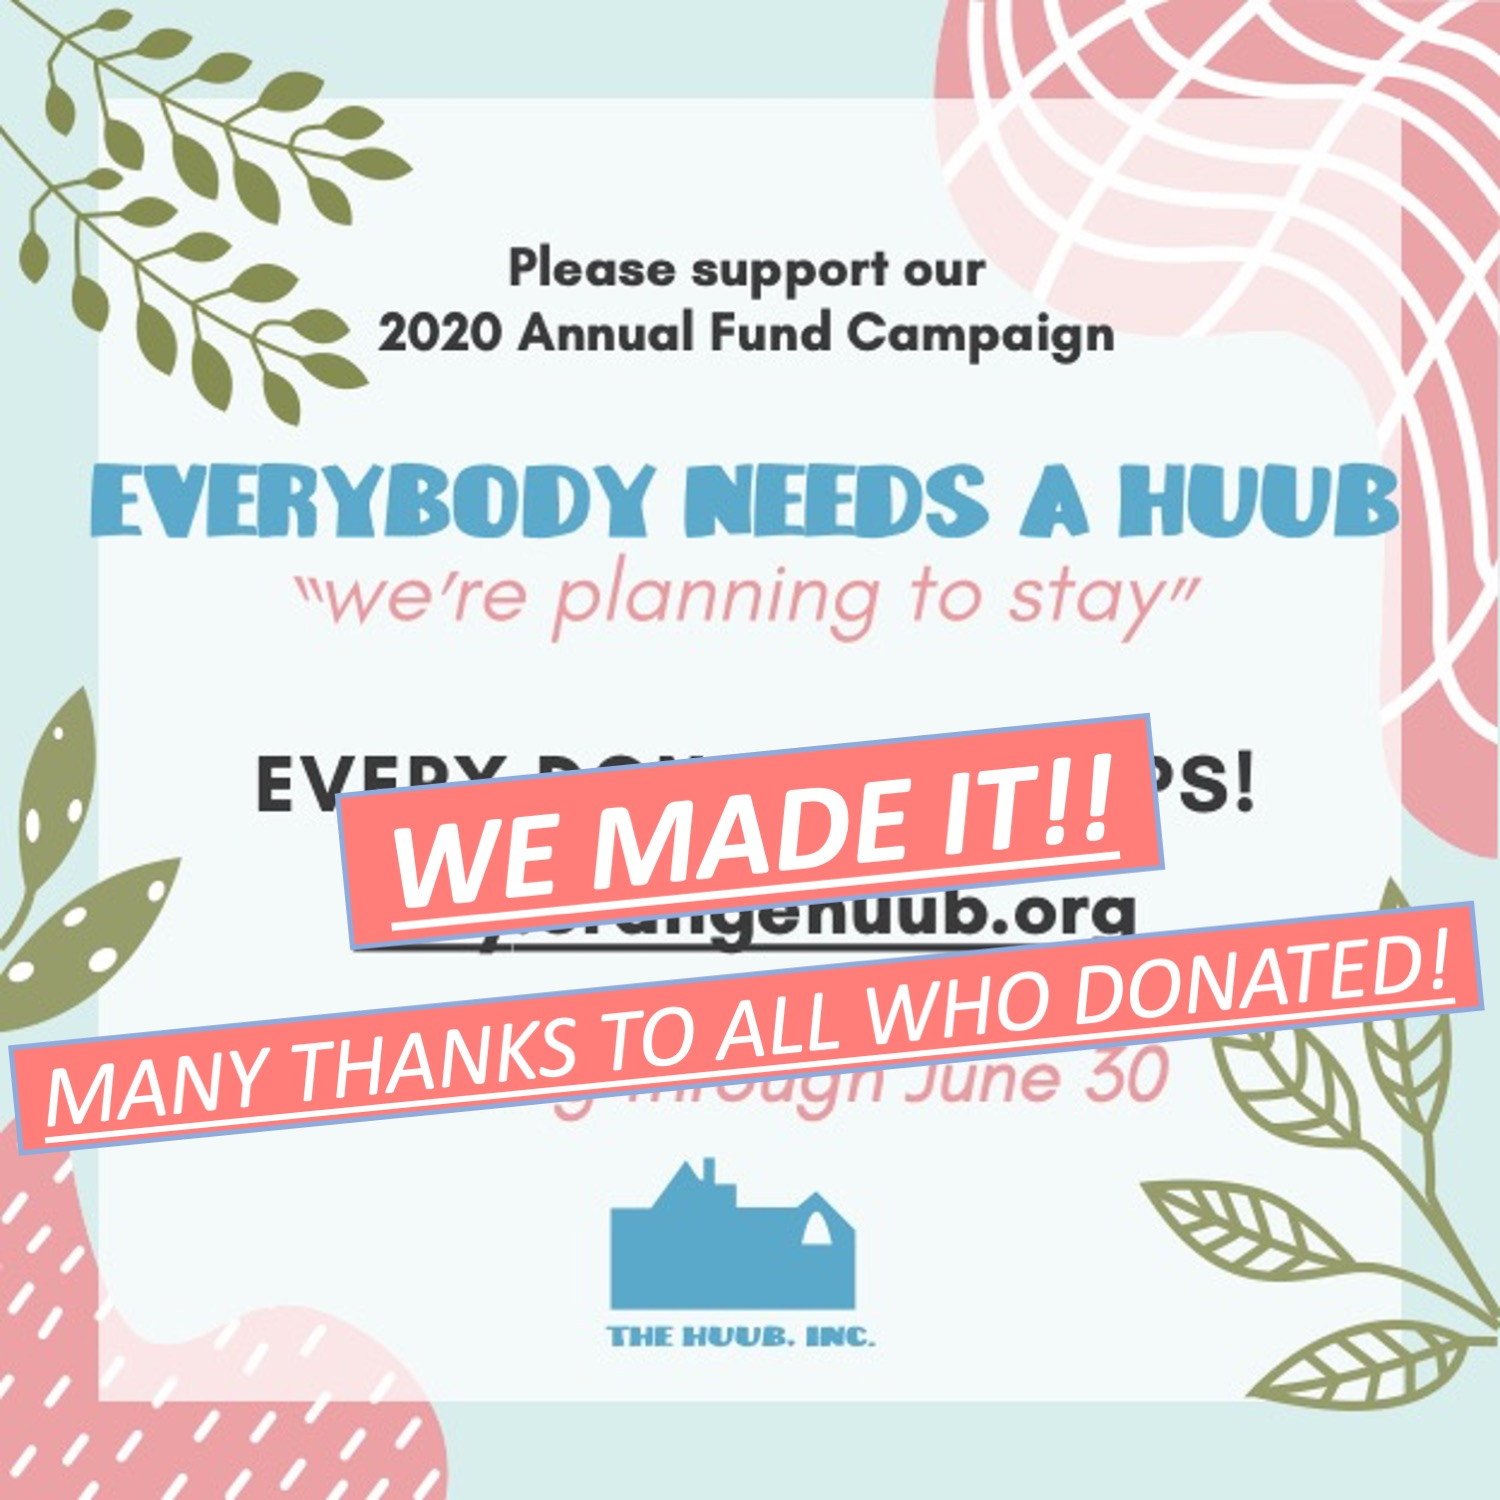 Support The HUUB!